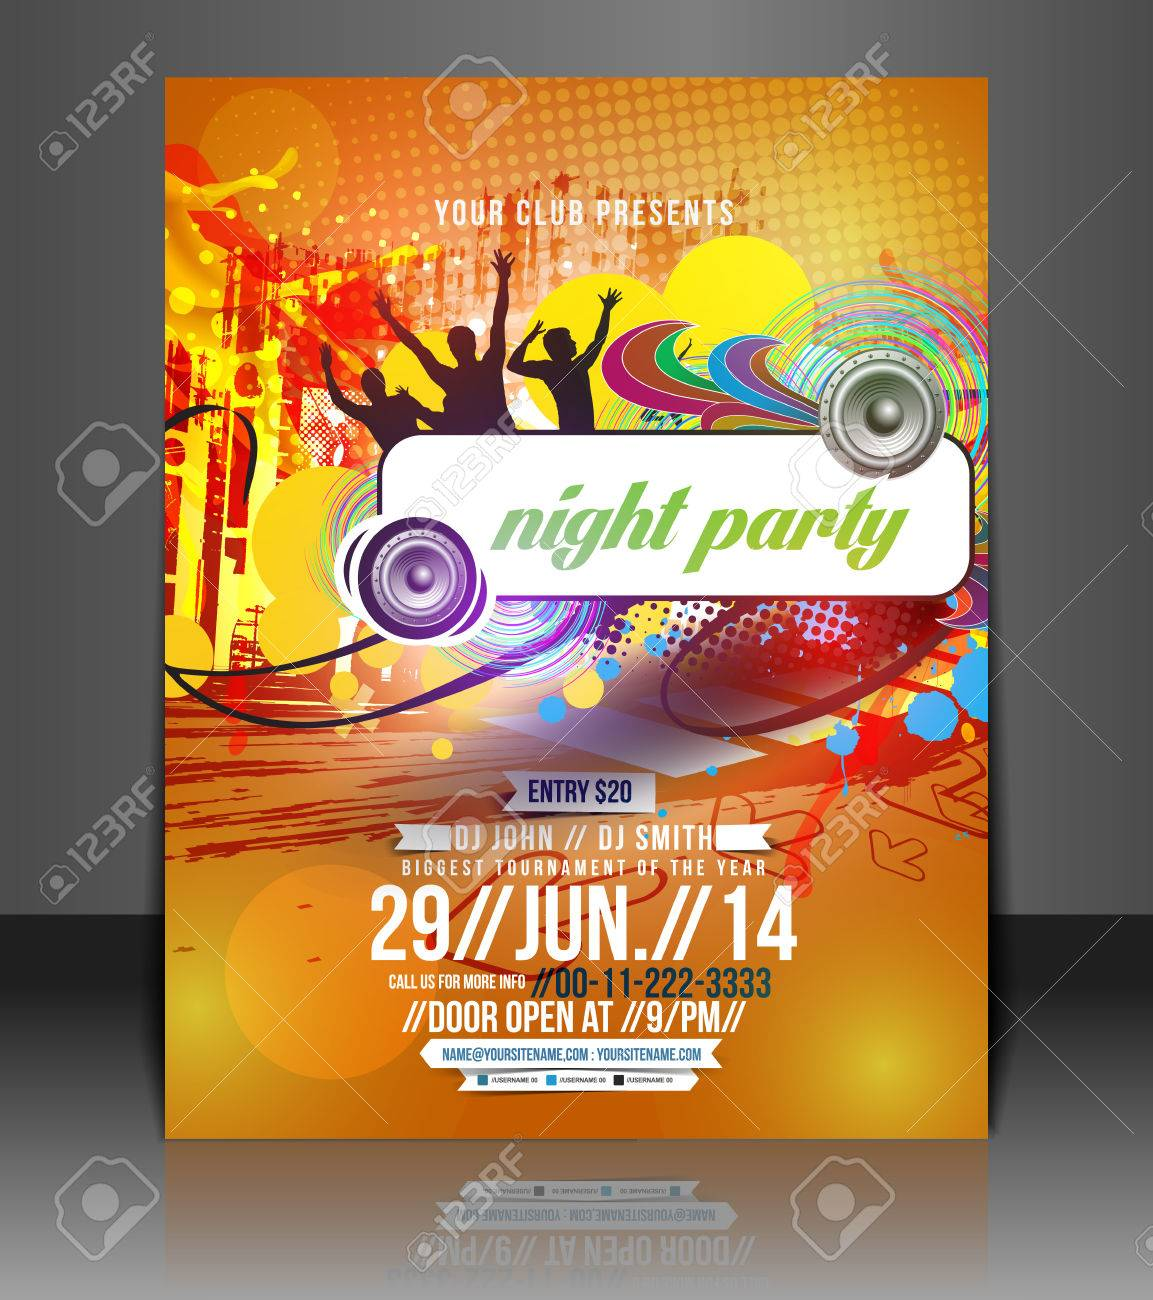 Poster design free template -  Poster Template Design Royalty Free Cliparts Download